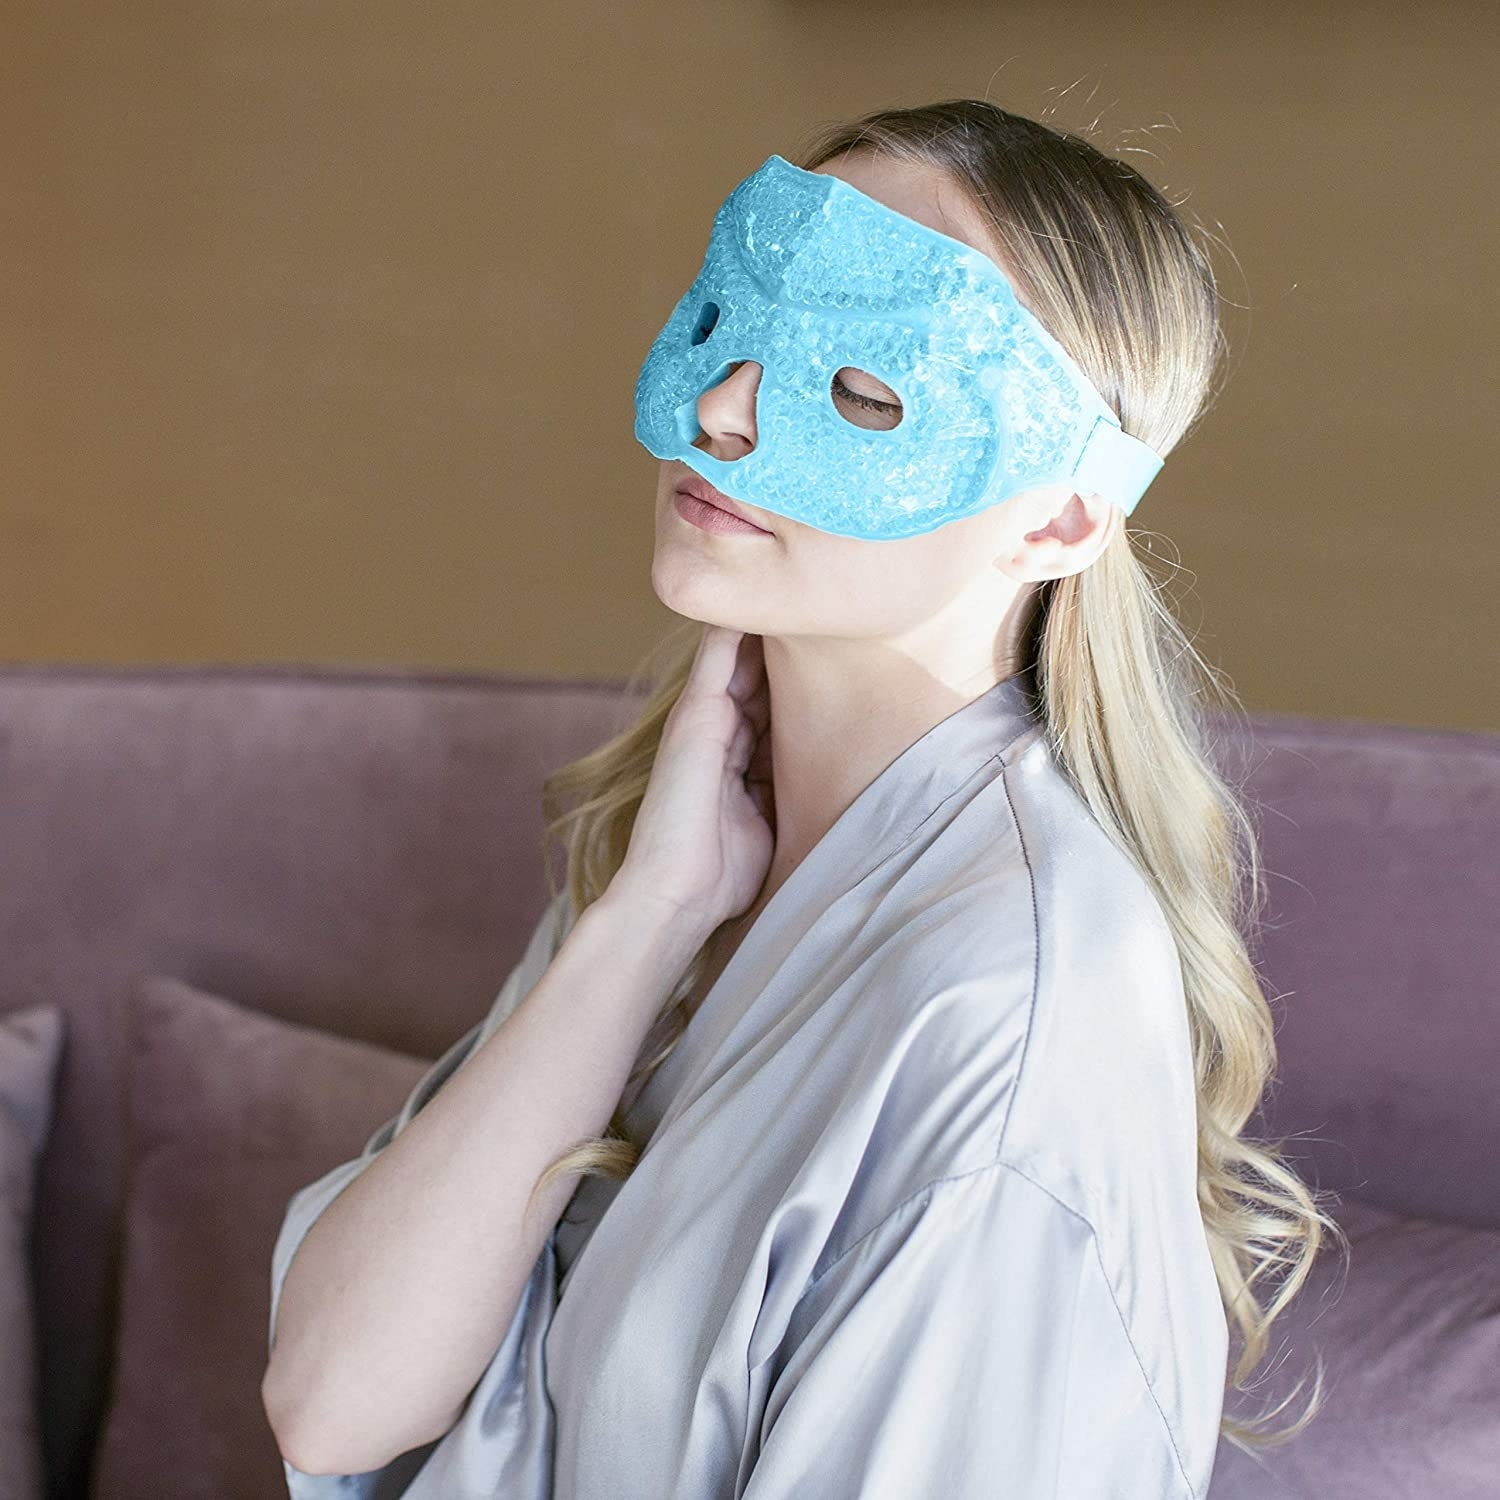 A person relaxes with the gel eye mask